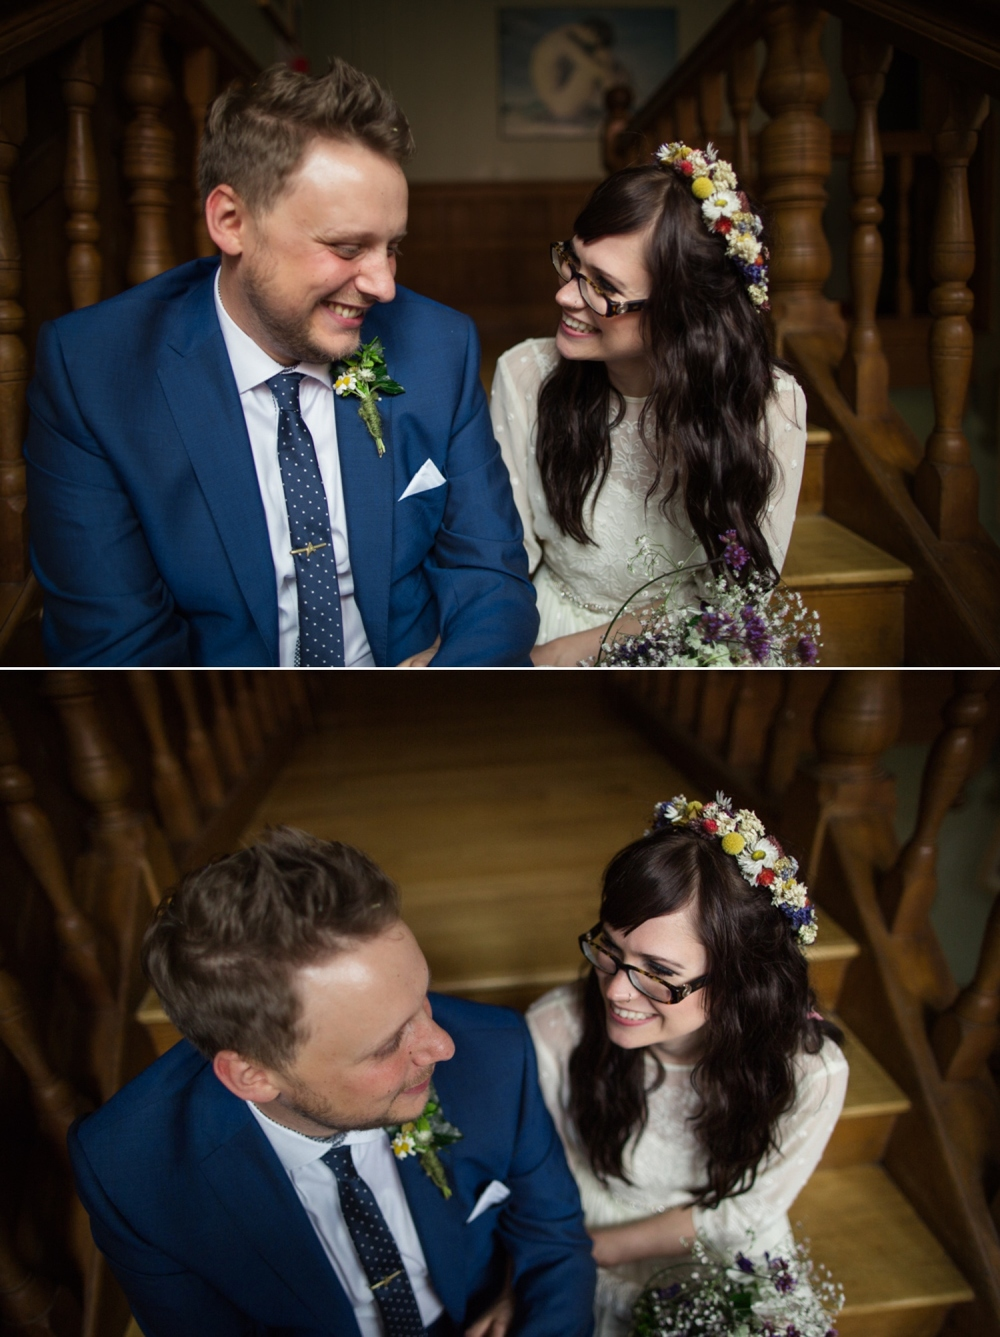 Somerset Wedding Photographer Elly & Liam_0026.jpg